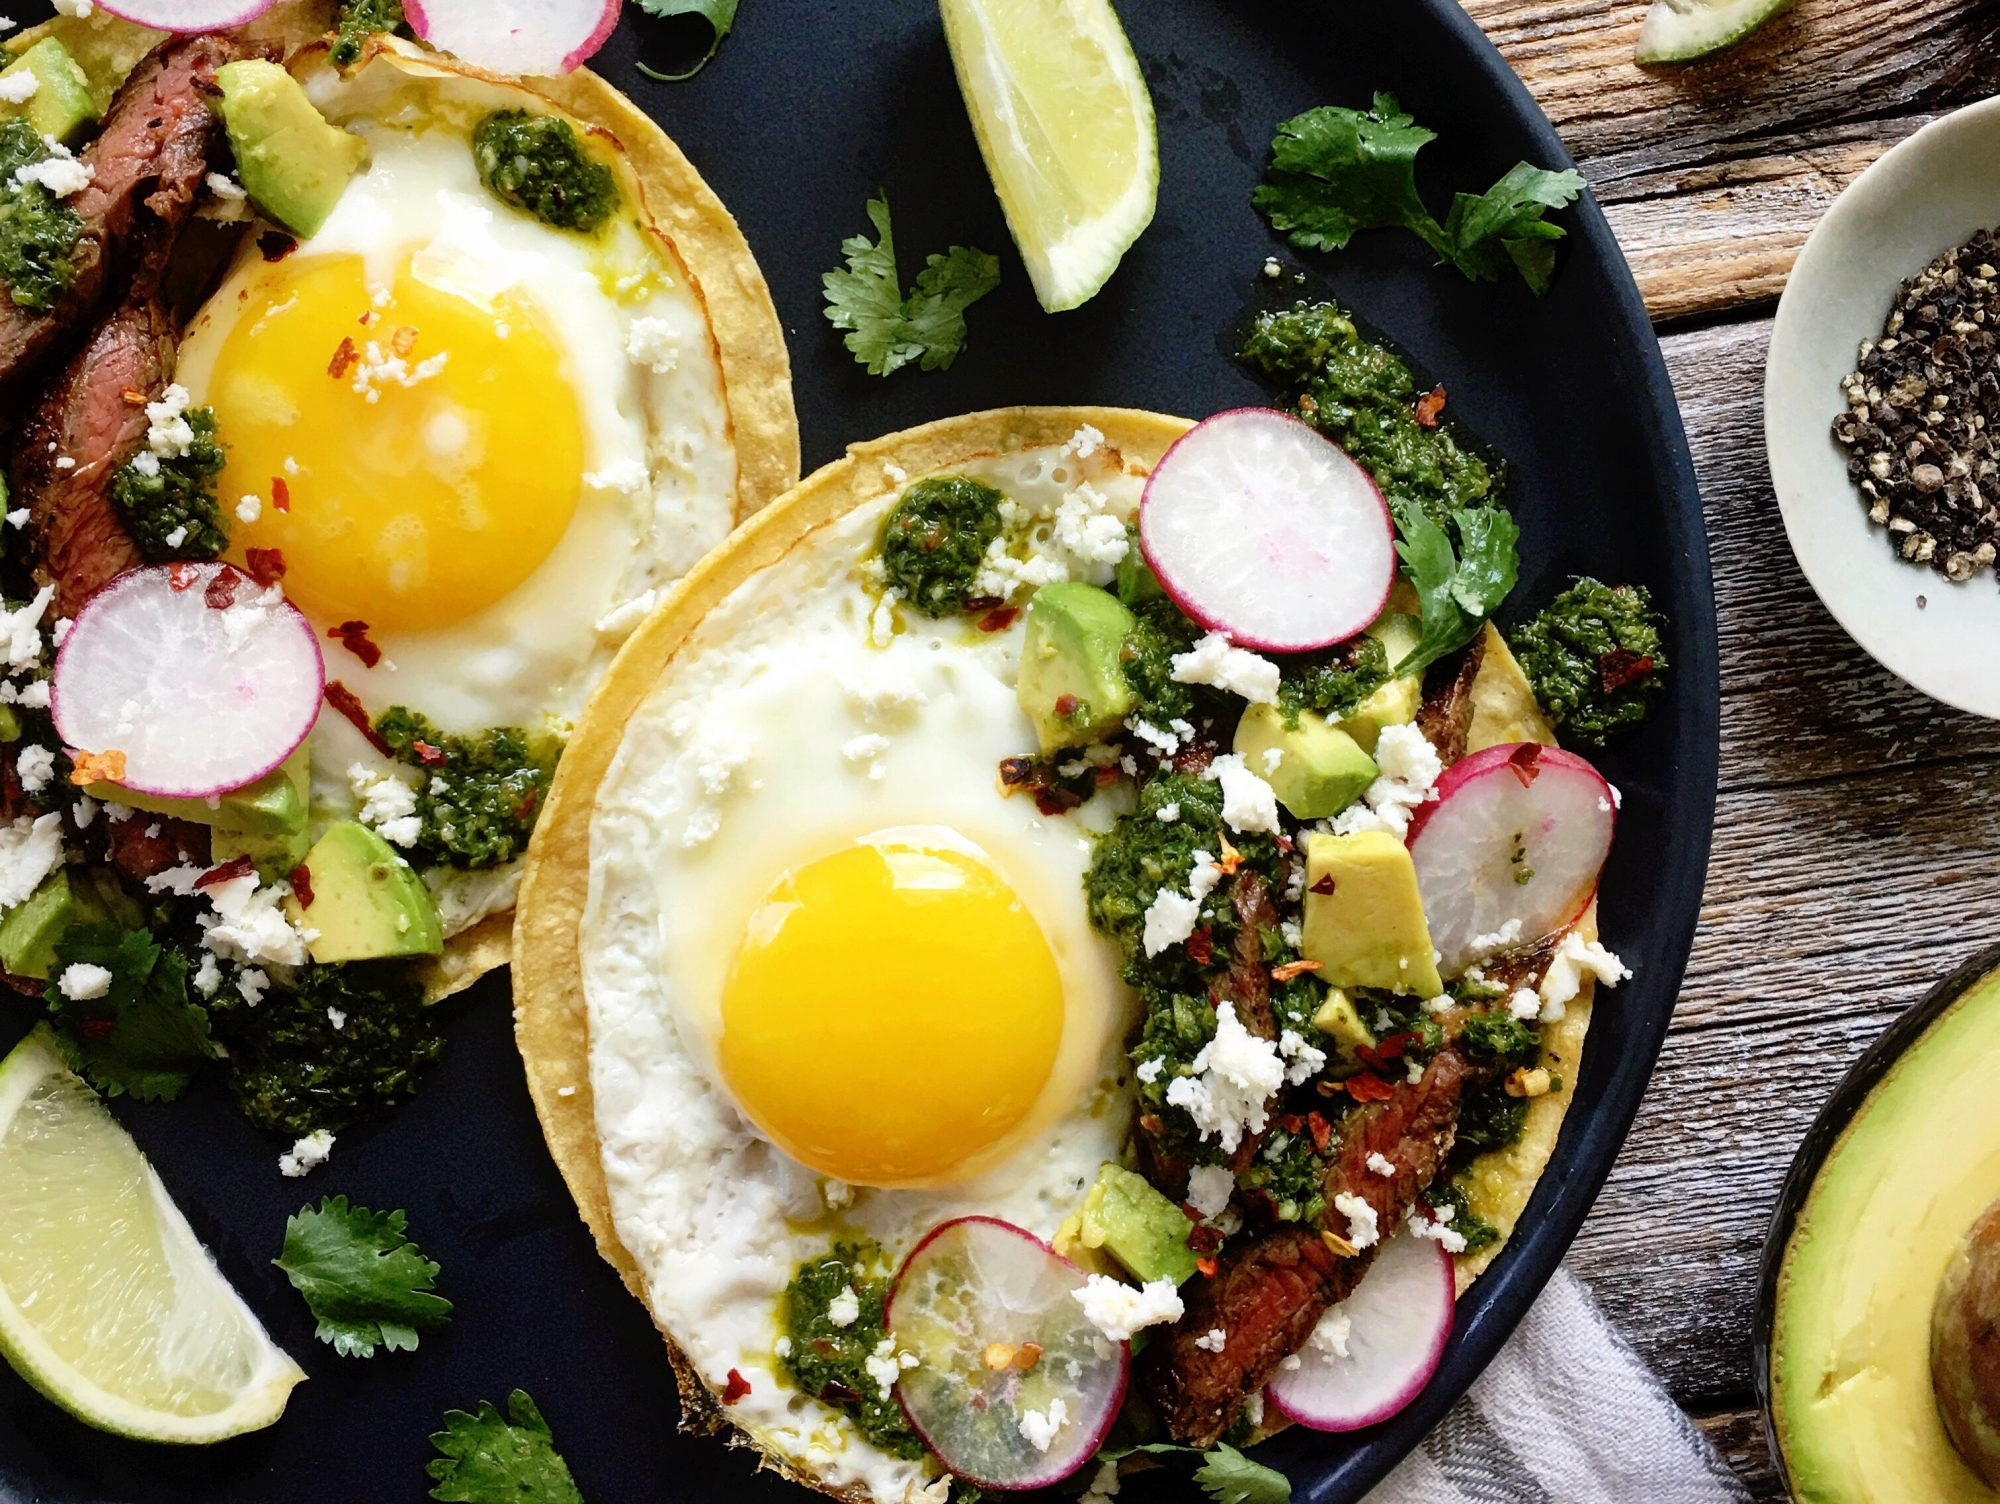 Steak and Fried Egg Breakfast Tacos with Chimichurri